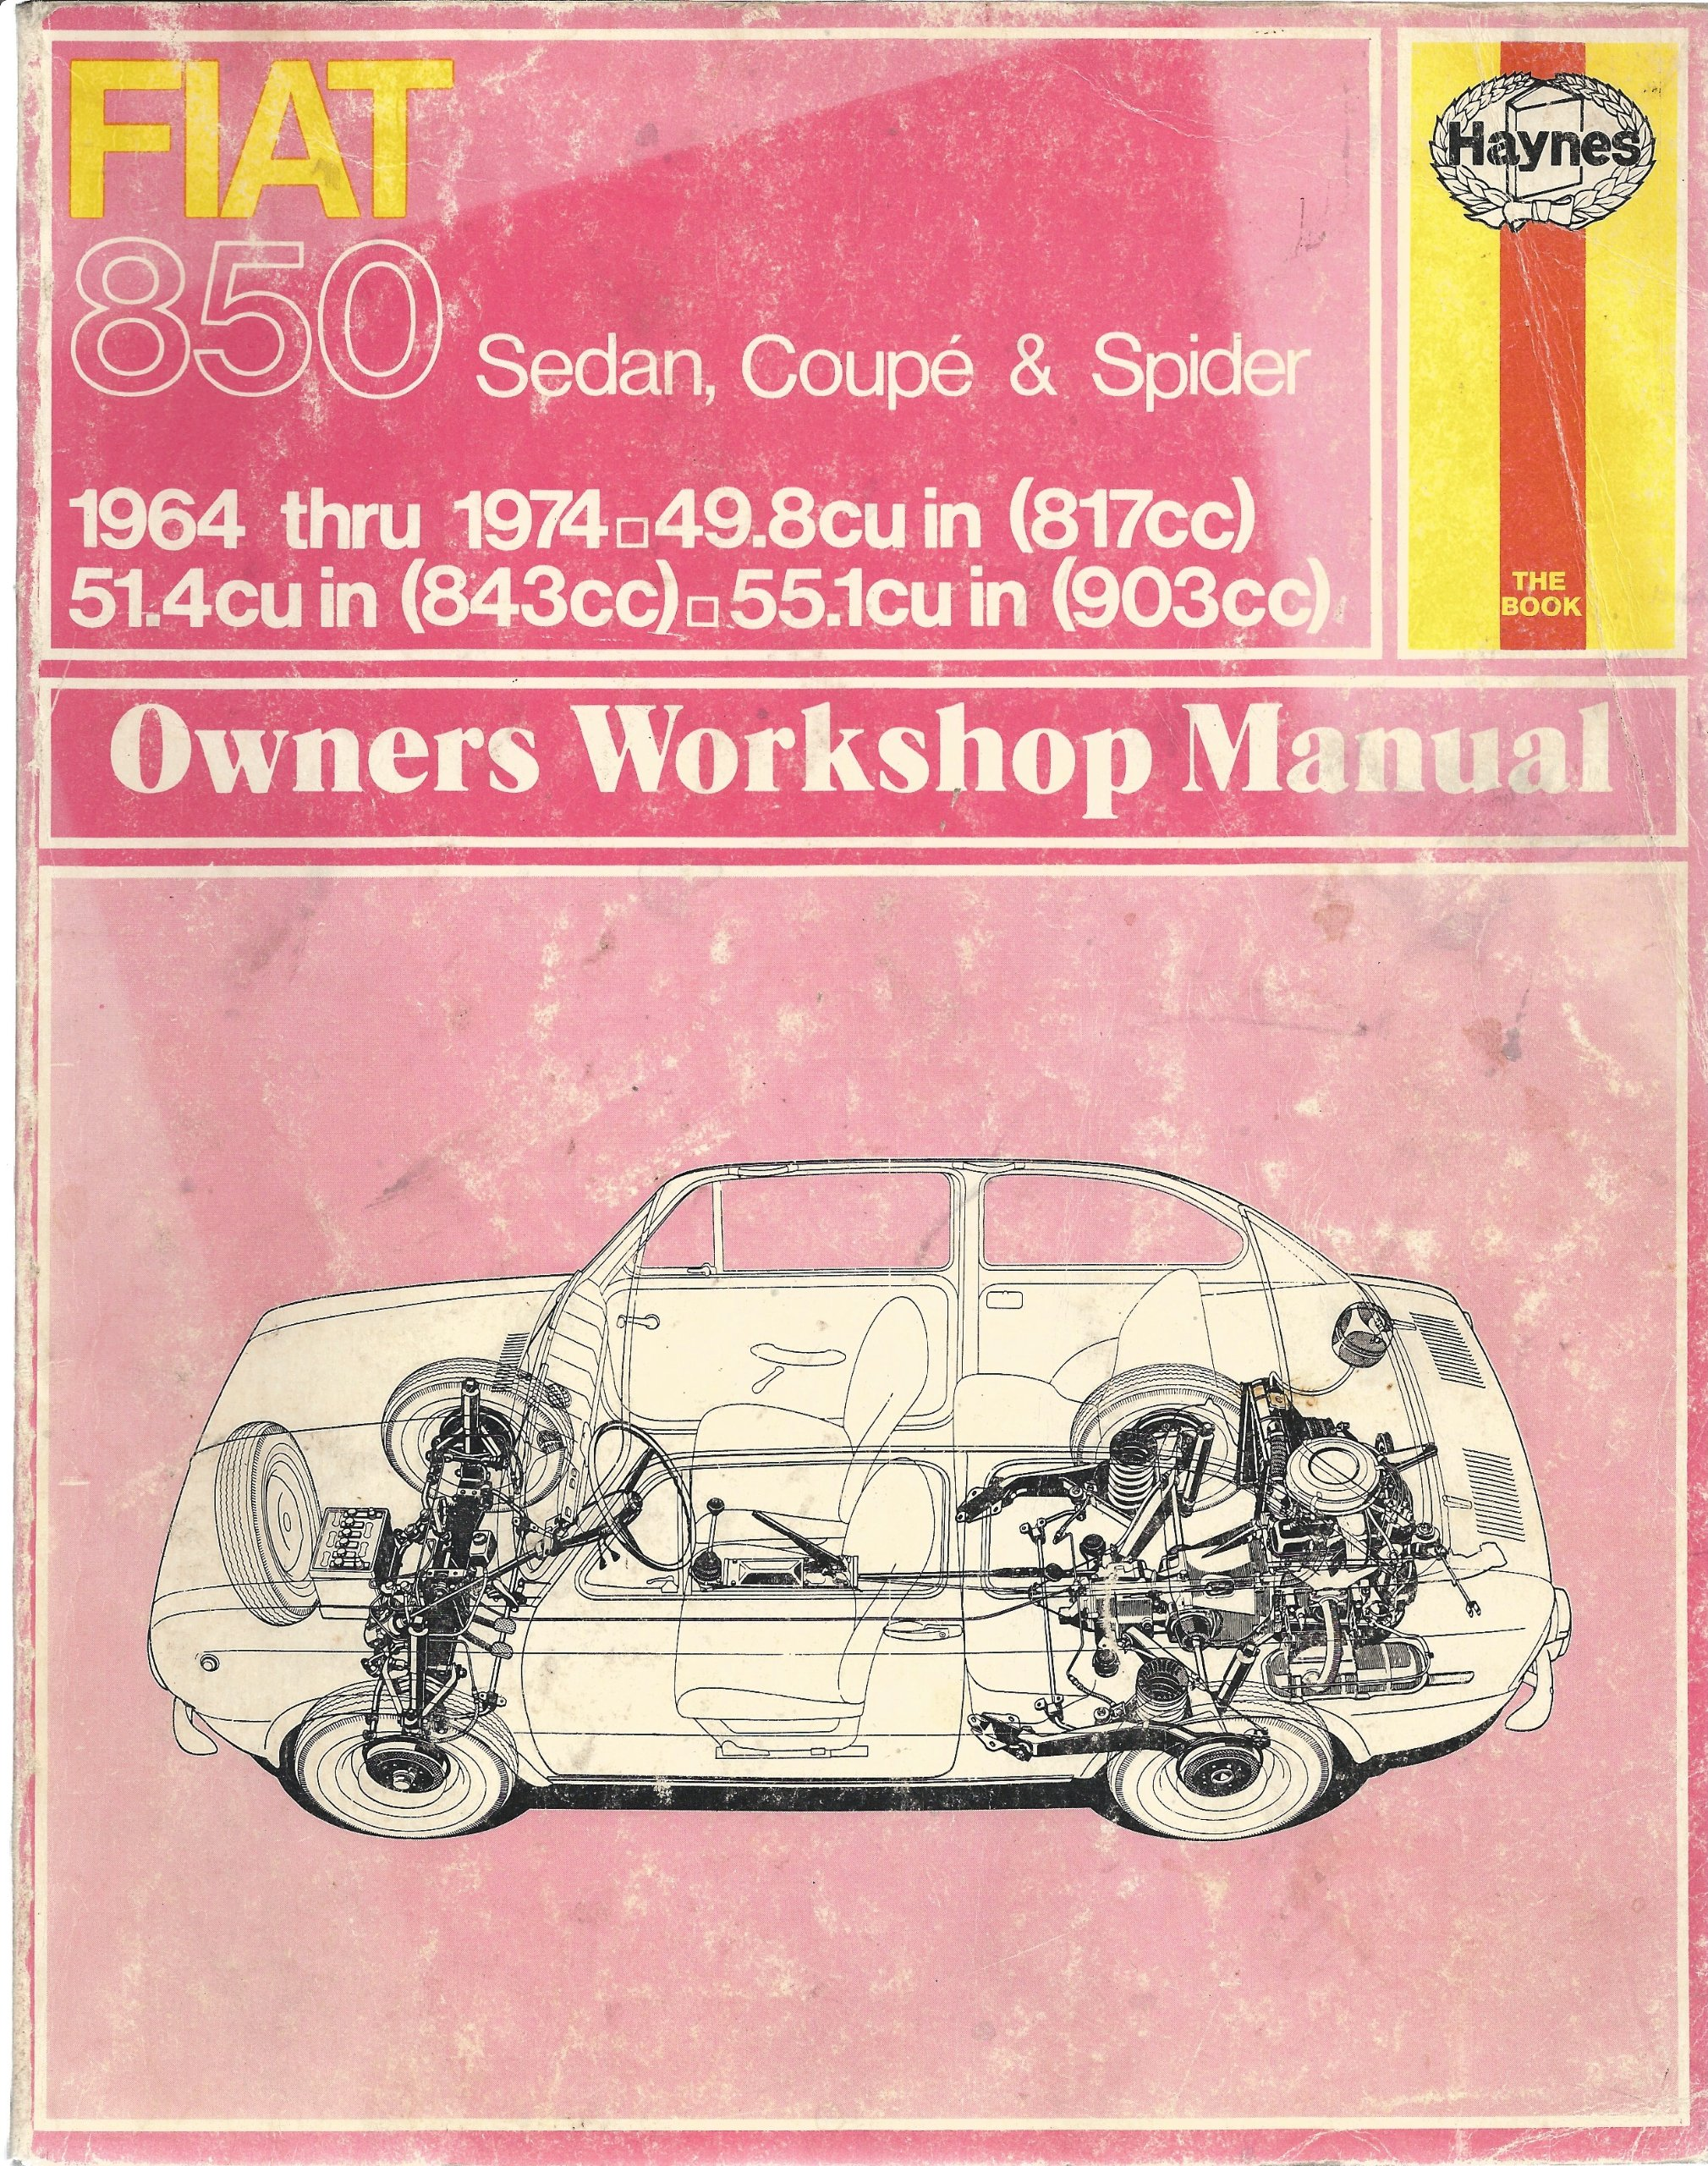 Fiat 850 Owner's Workshop Manual: J. H. Haynes, B.L.Chalmers- Hunt:  9780900550386: Amazon.com: Books